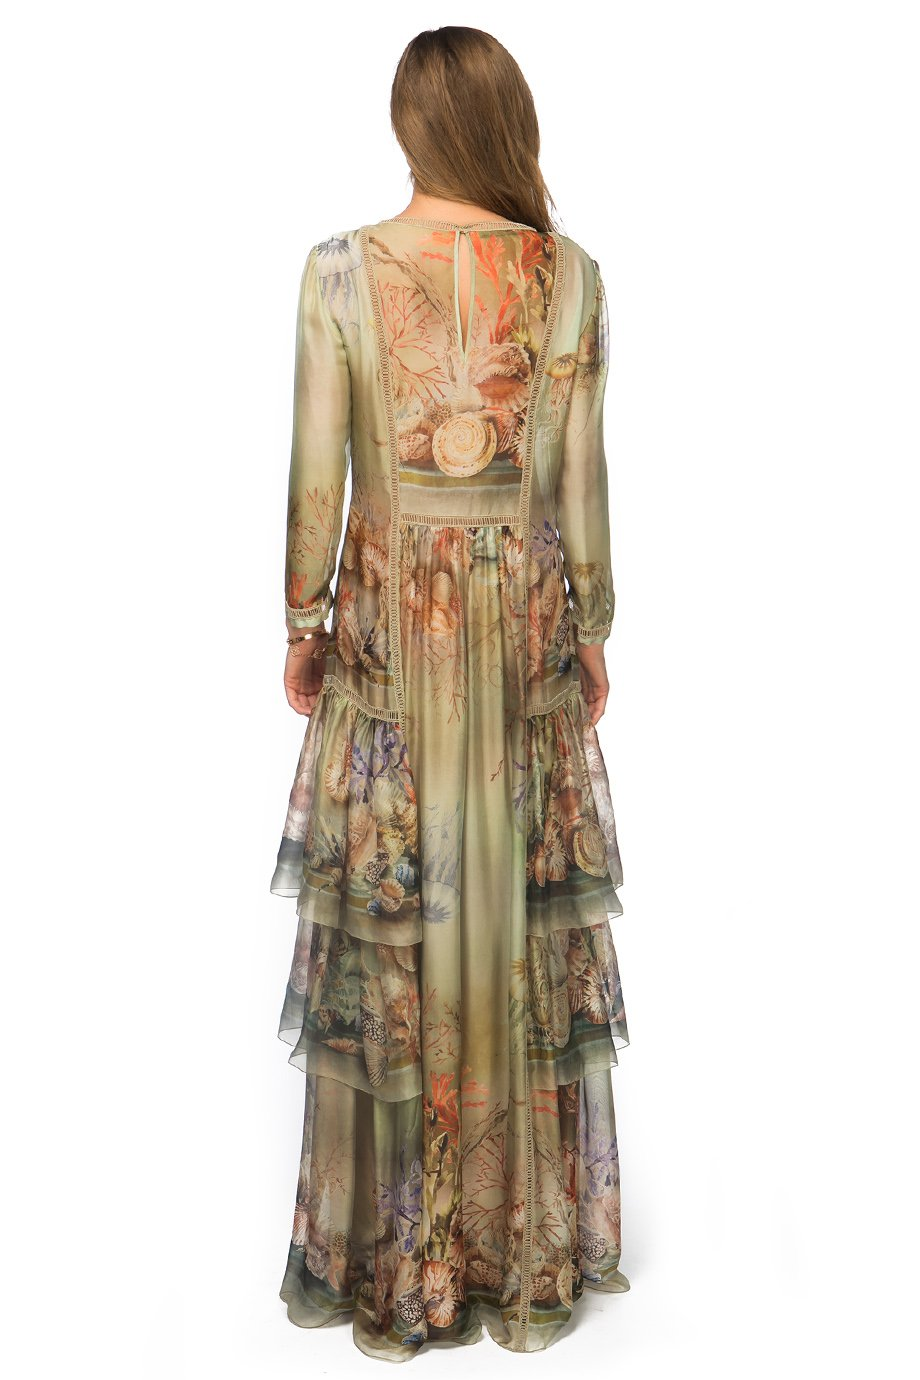 Alberta Ferretti Olive Nude Seashell Long Sleeve Tiered Dress